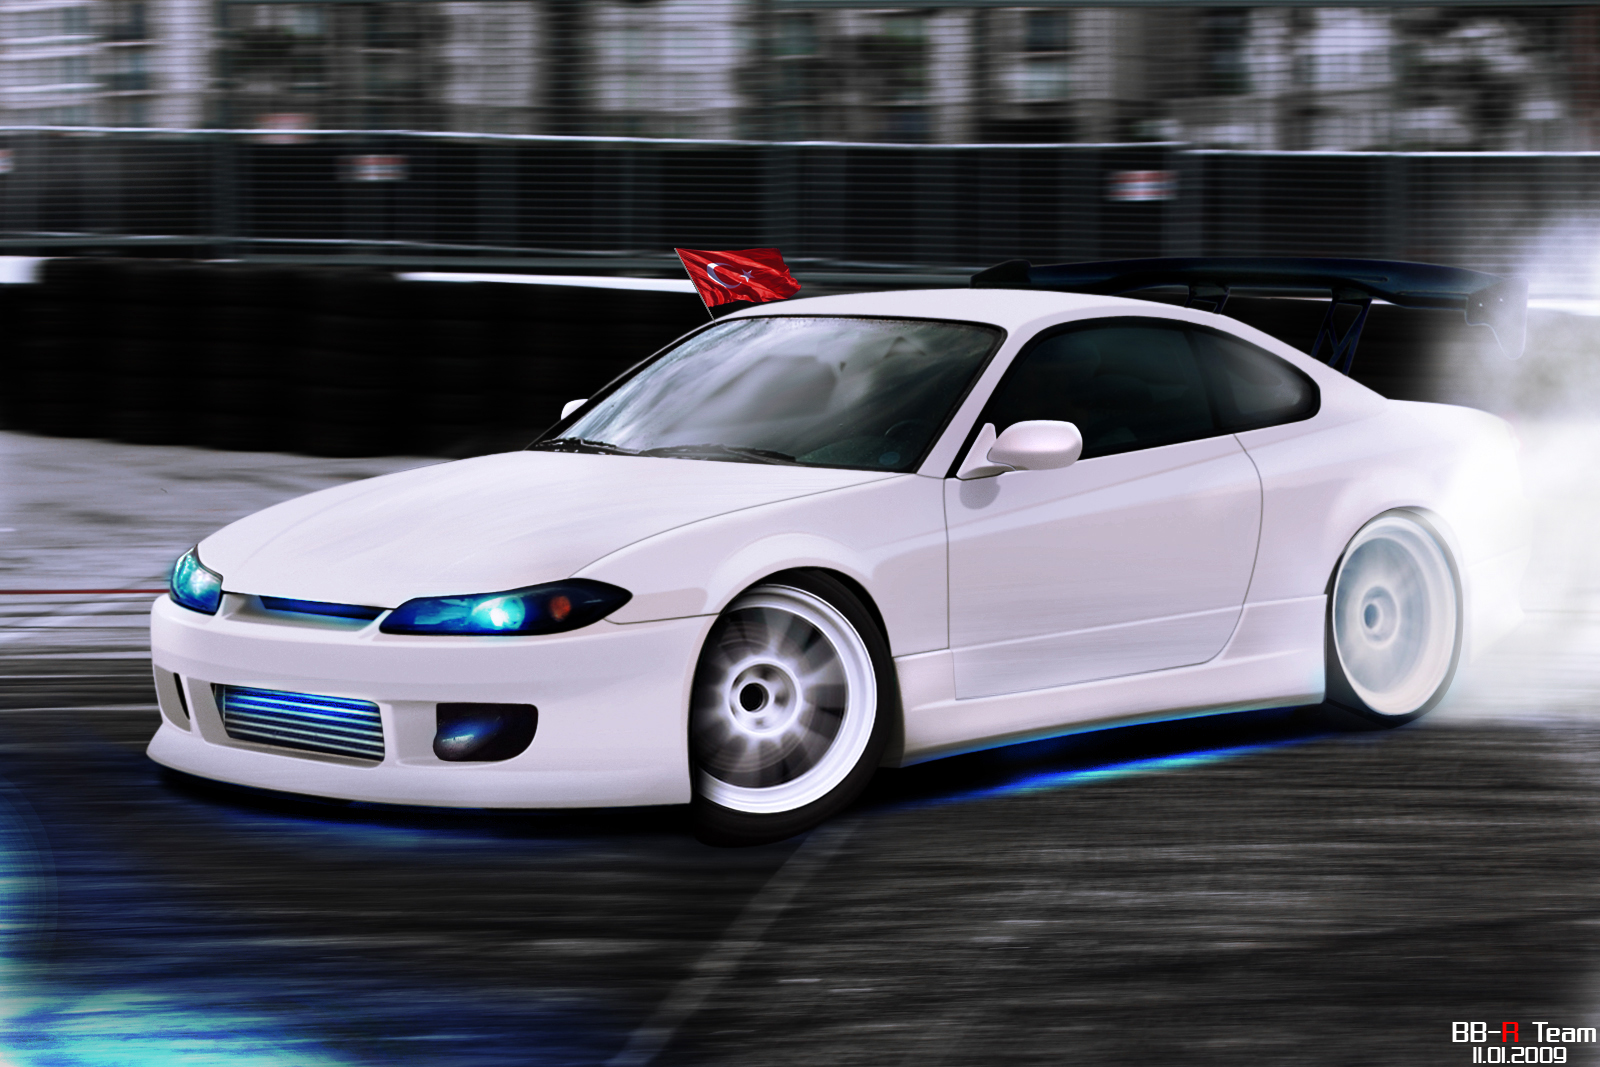 Nissan Silvia S15 Wallpapers Vehicles Hq Nissan Silvia S15 Pictures 4k Wallpapers 2019